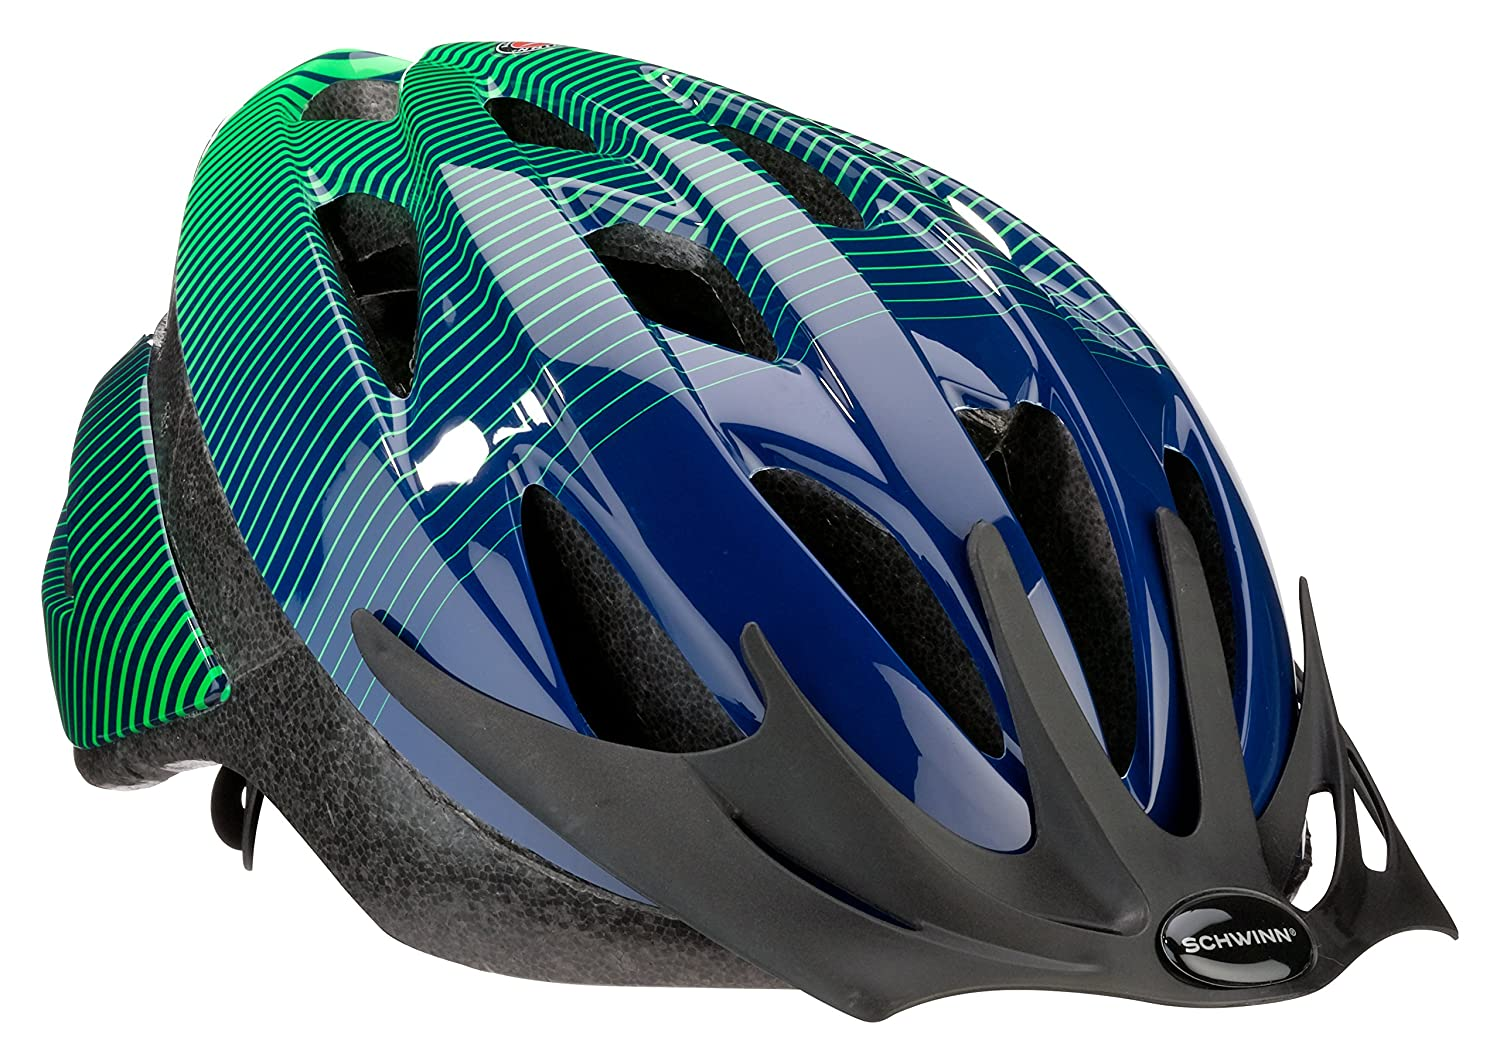 Schwinn Thrasher Lightweight Microshell Bicycle Helmet Featuring 360 Degree Comfort System with Dial-Fit Adjustment and Children Sizes for Adults Youth